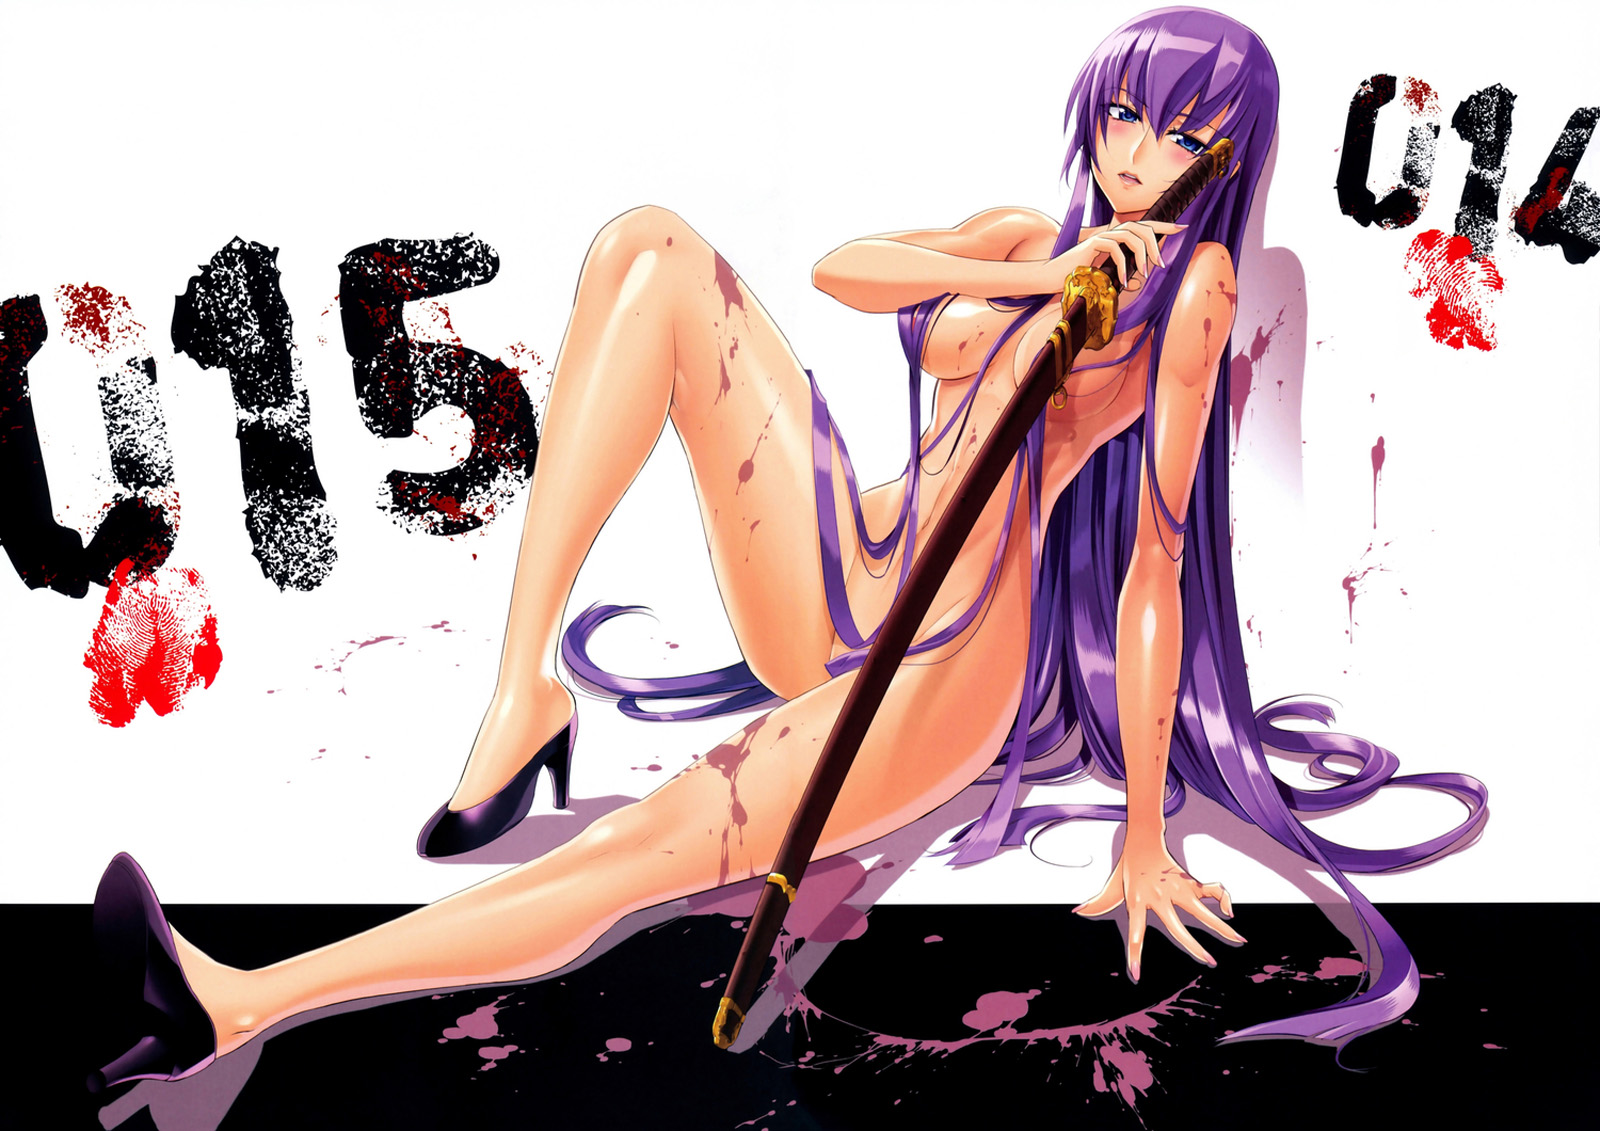 Hd Wallpaper Saeko Busujima Hotd 0761